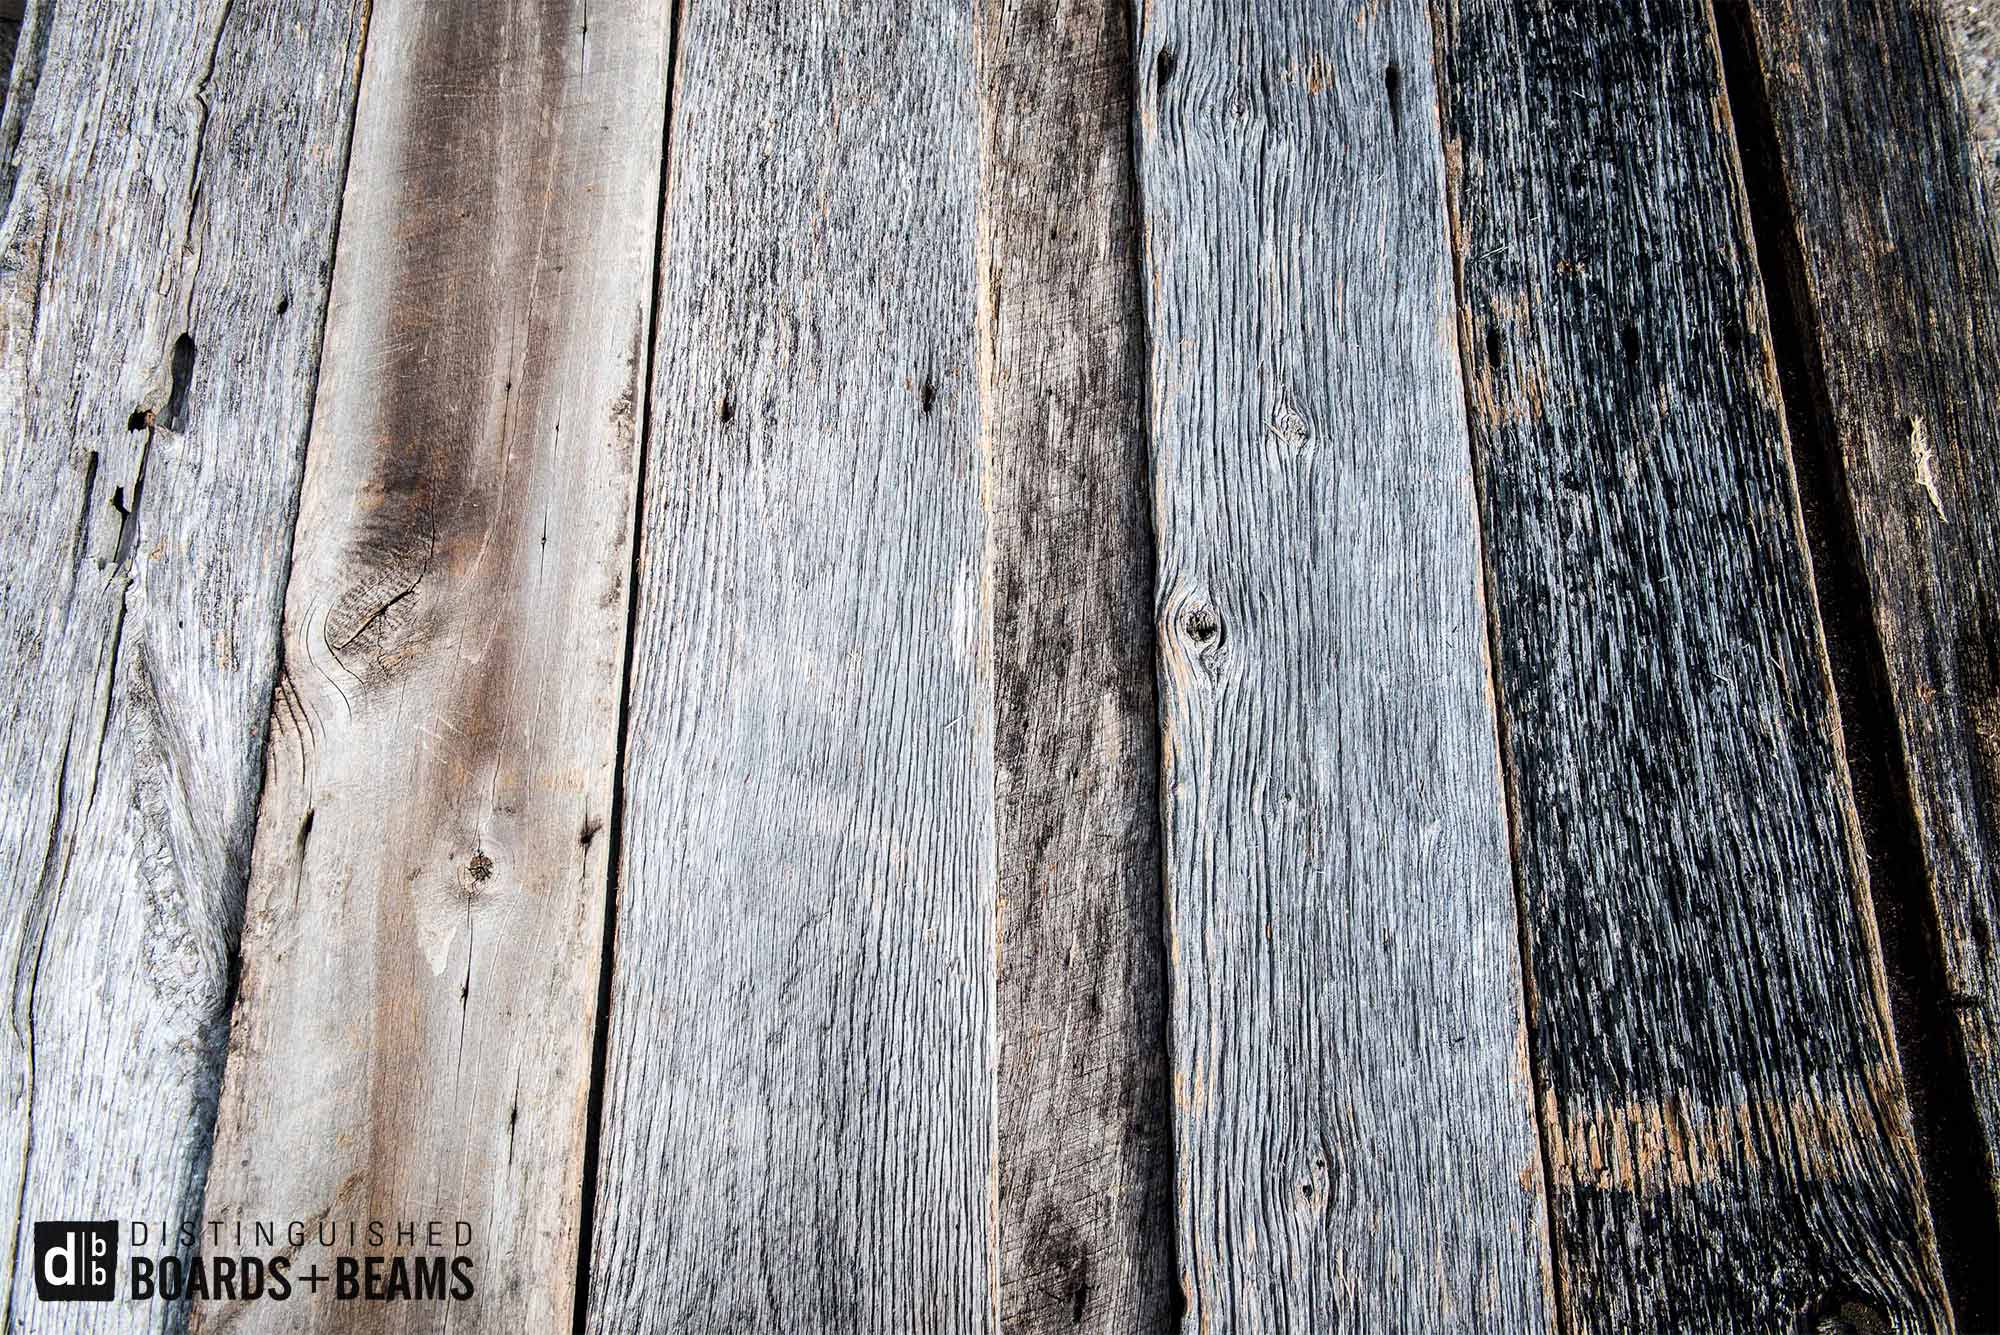 Common Species Found In Reclaimed Wood